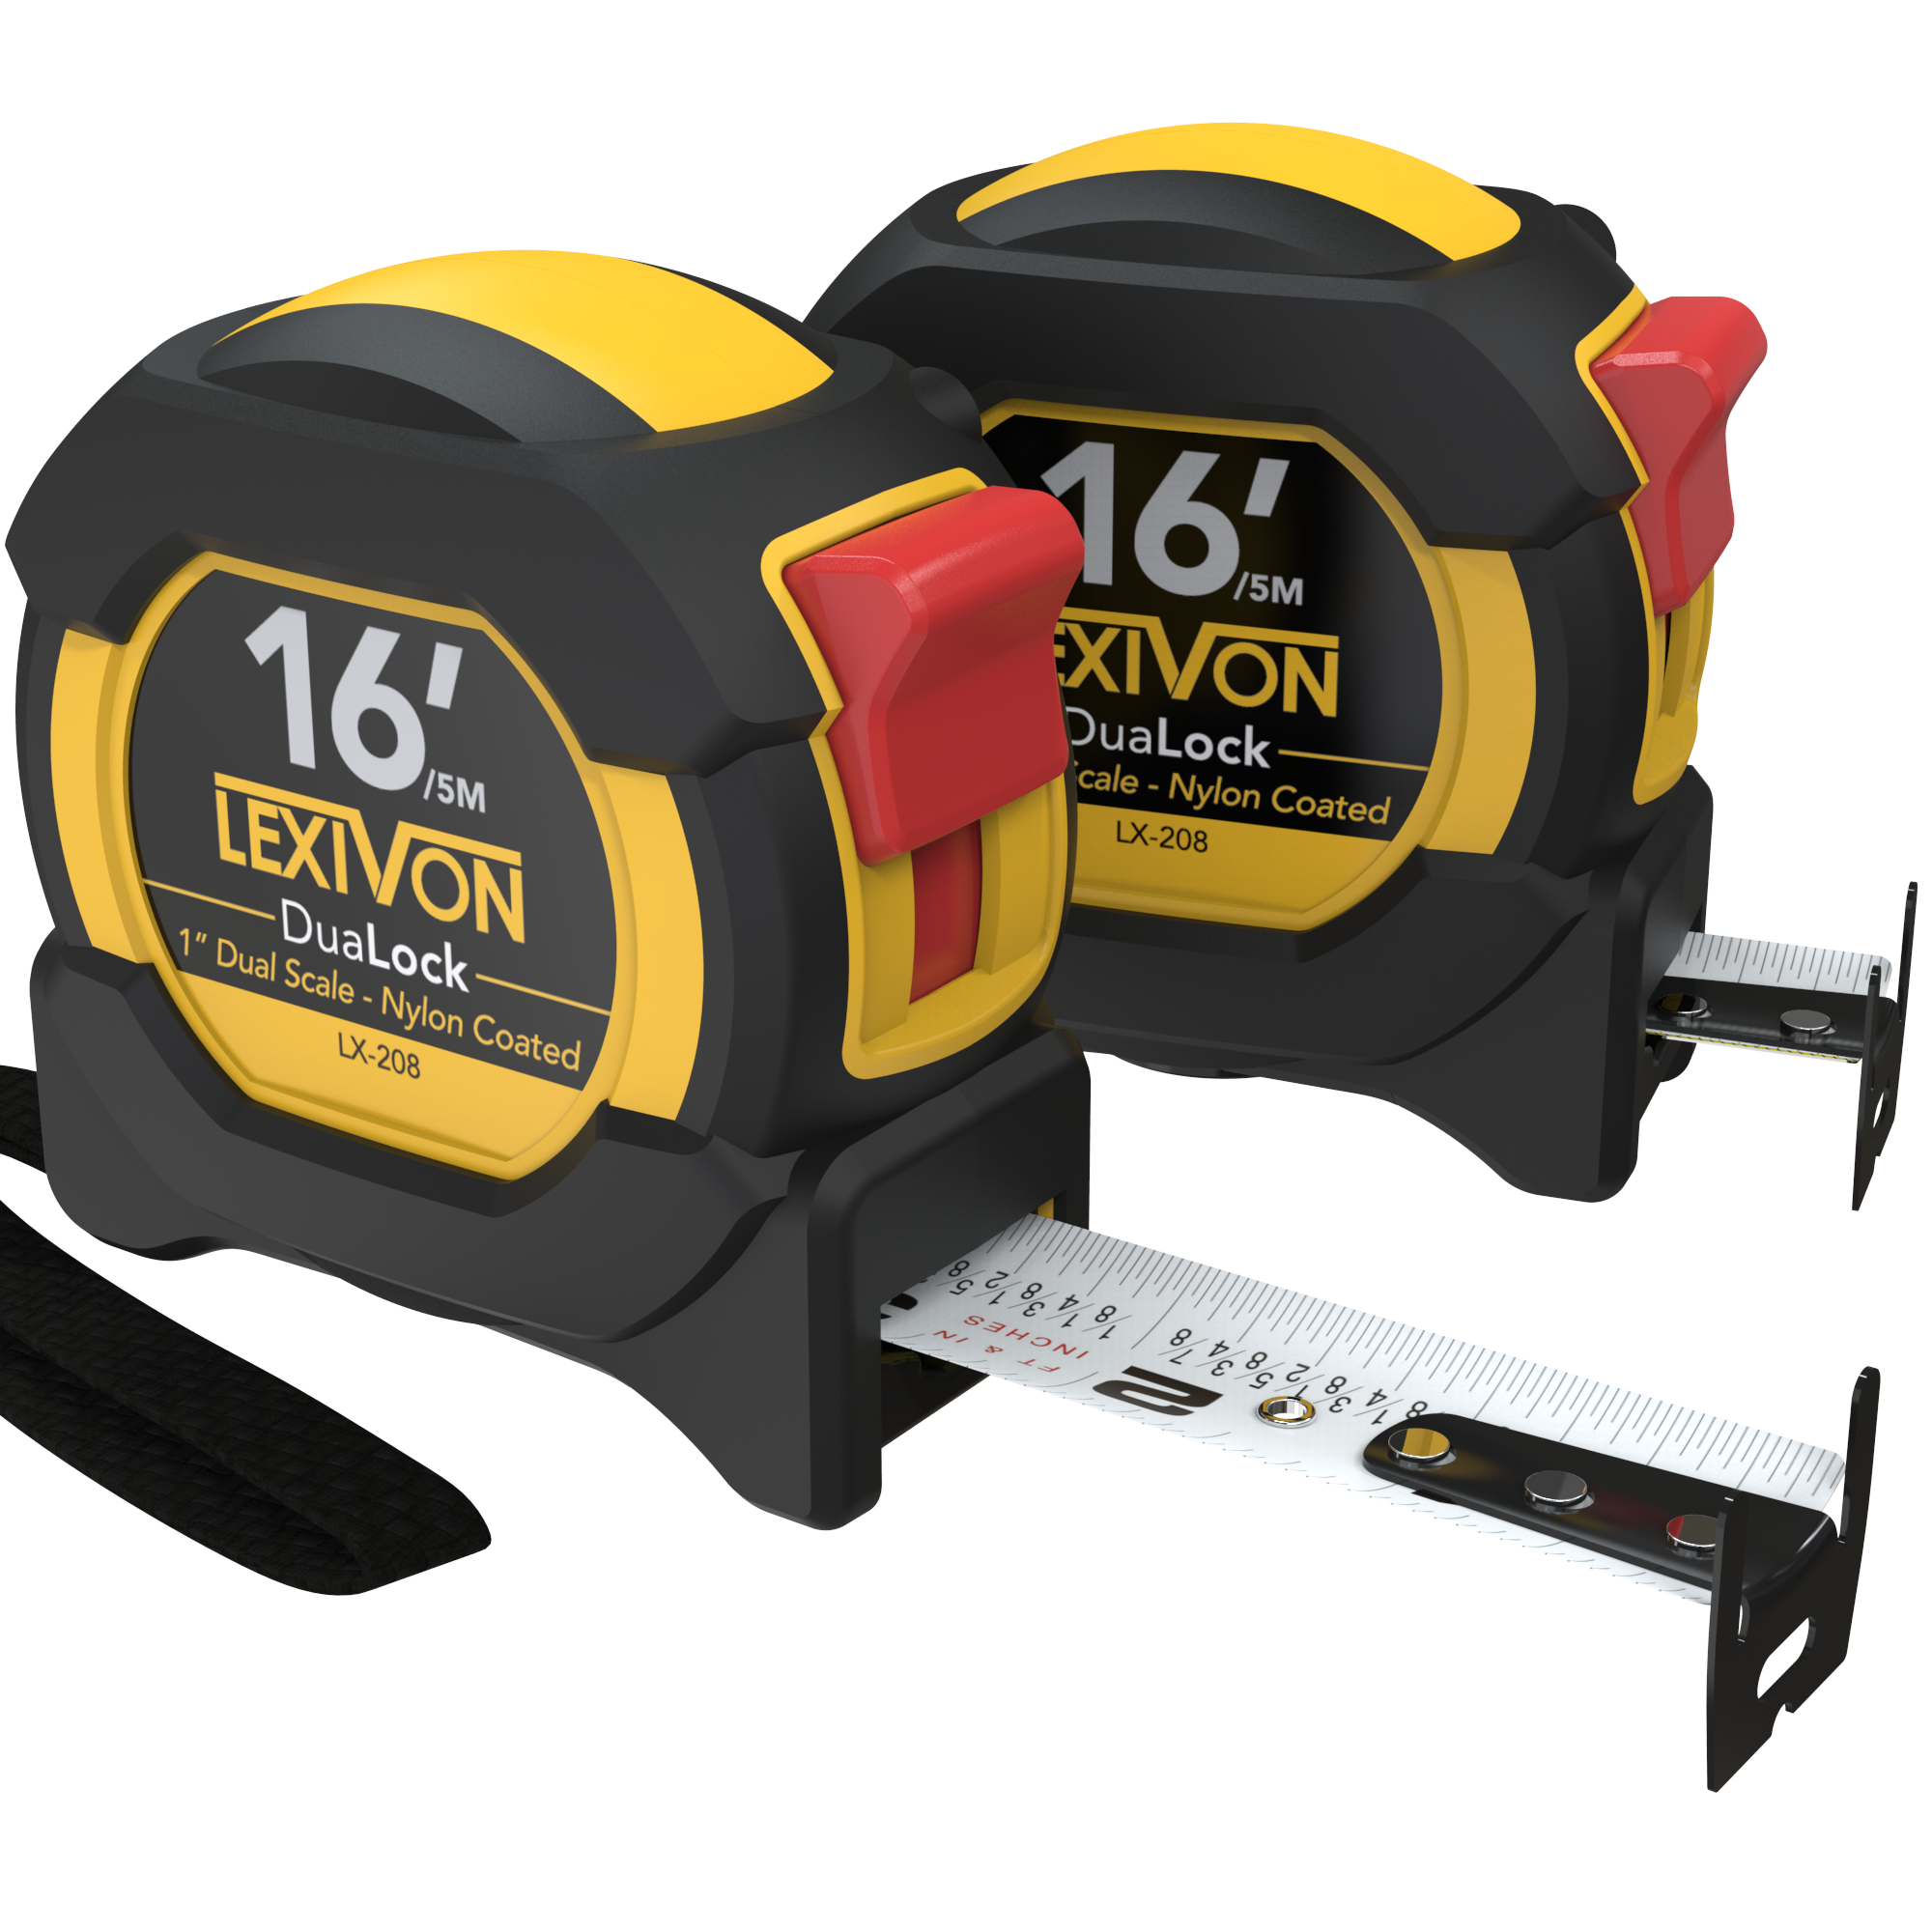 LEXIVON [2-Pack] 16Ft/5m DuaLock Tape Measure | 1-Inch Wide Blade With Nylon Coating, Matte Finish White & Yellow Dual Sided Rule Print | Ft/Inch/Fractions/Metric (LX-208)